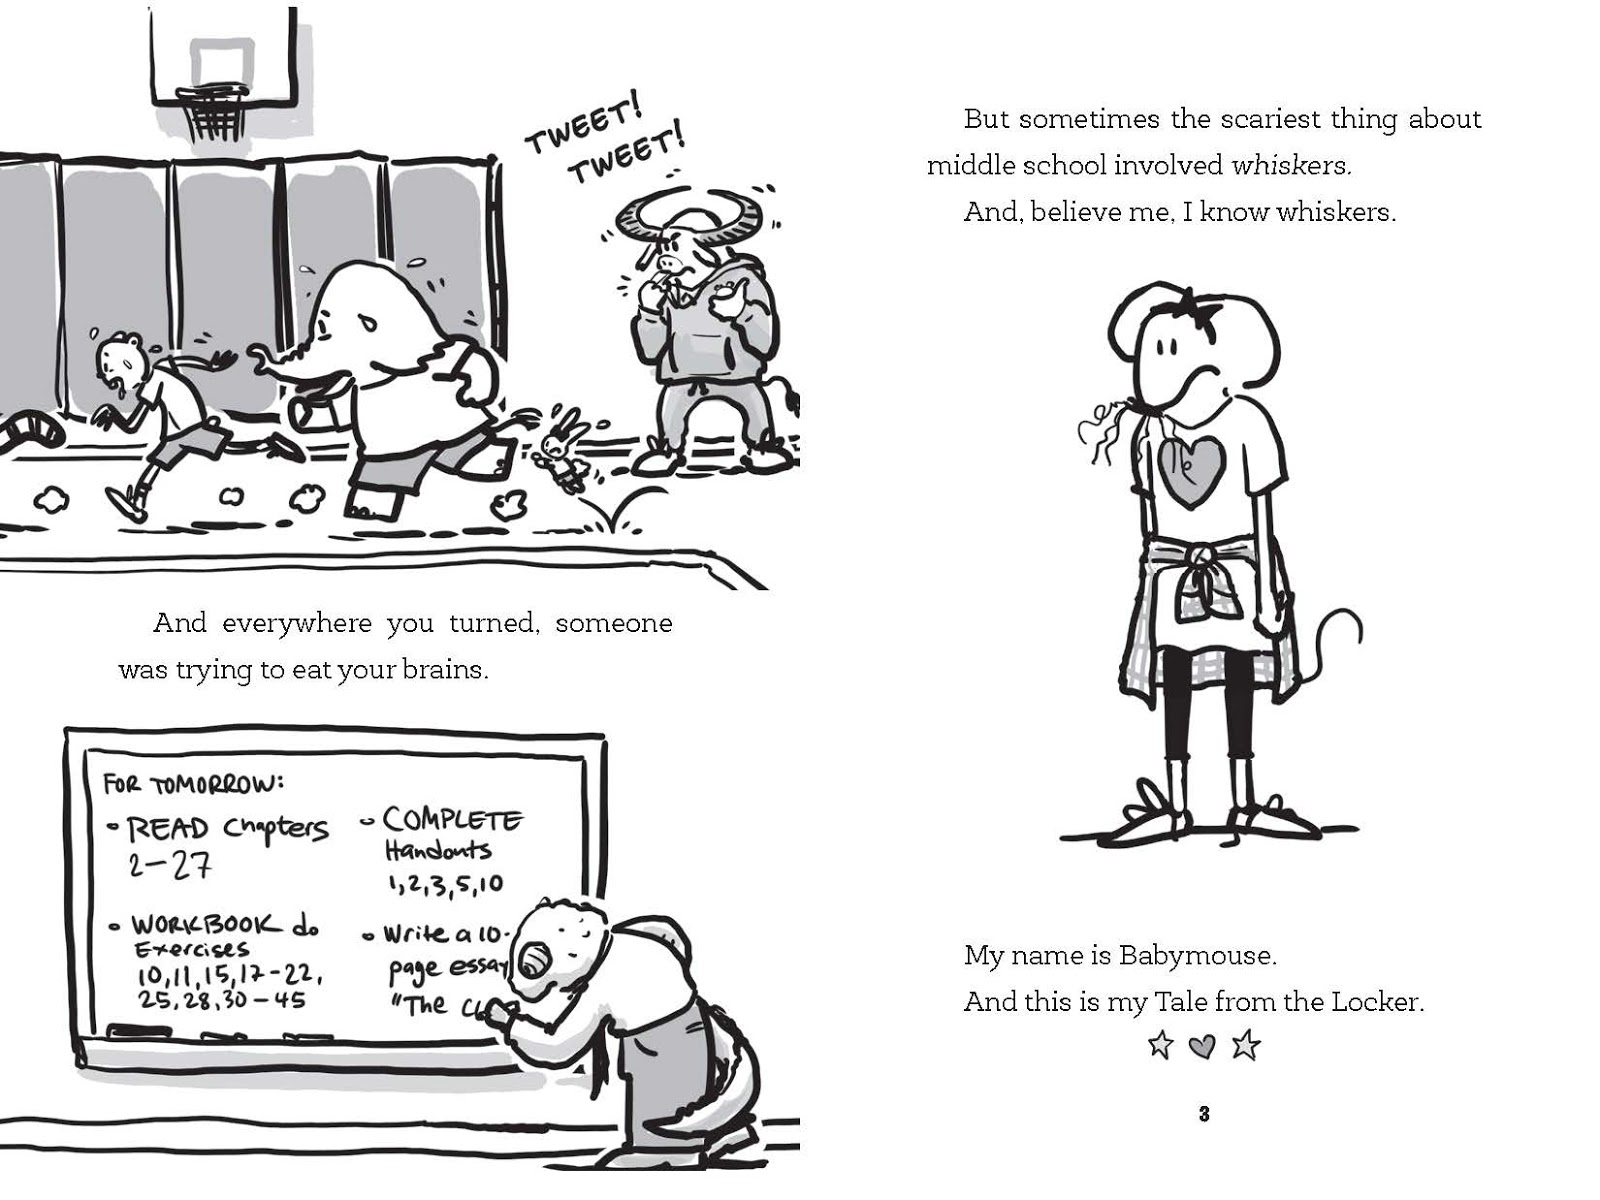 Lights, Camera, Middle School! Babymouse: Tales from the